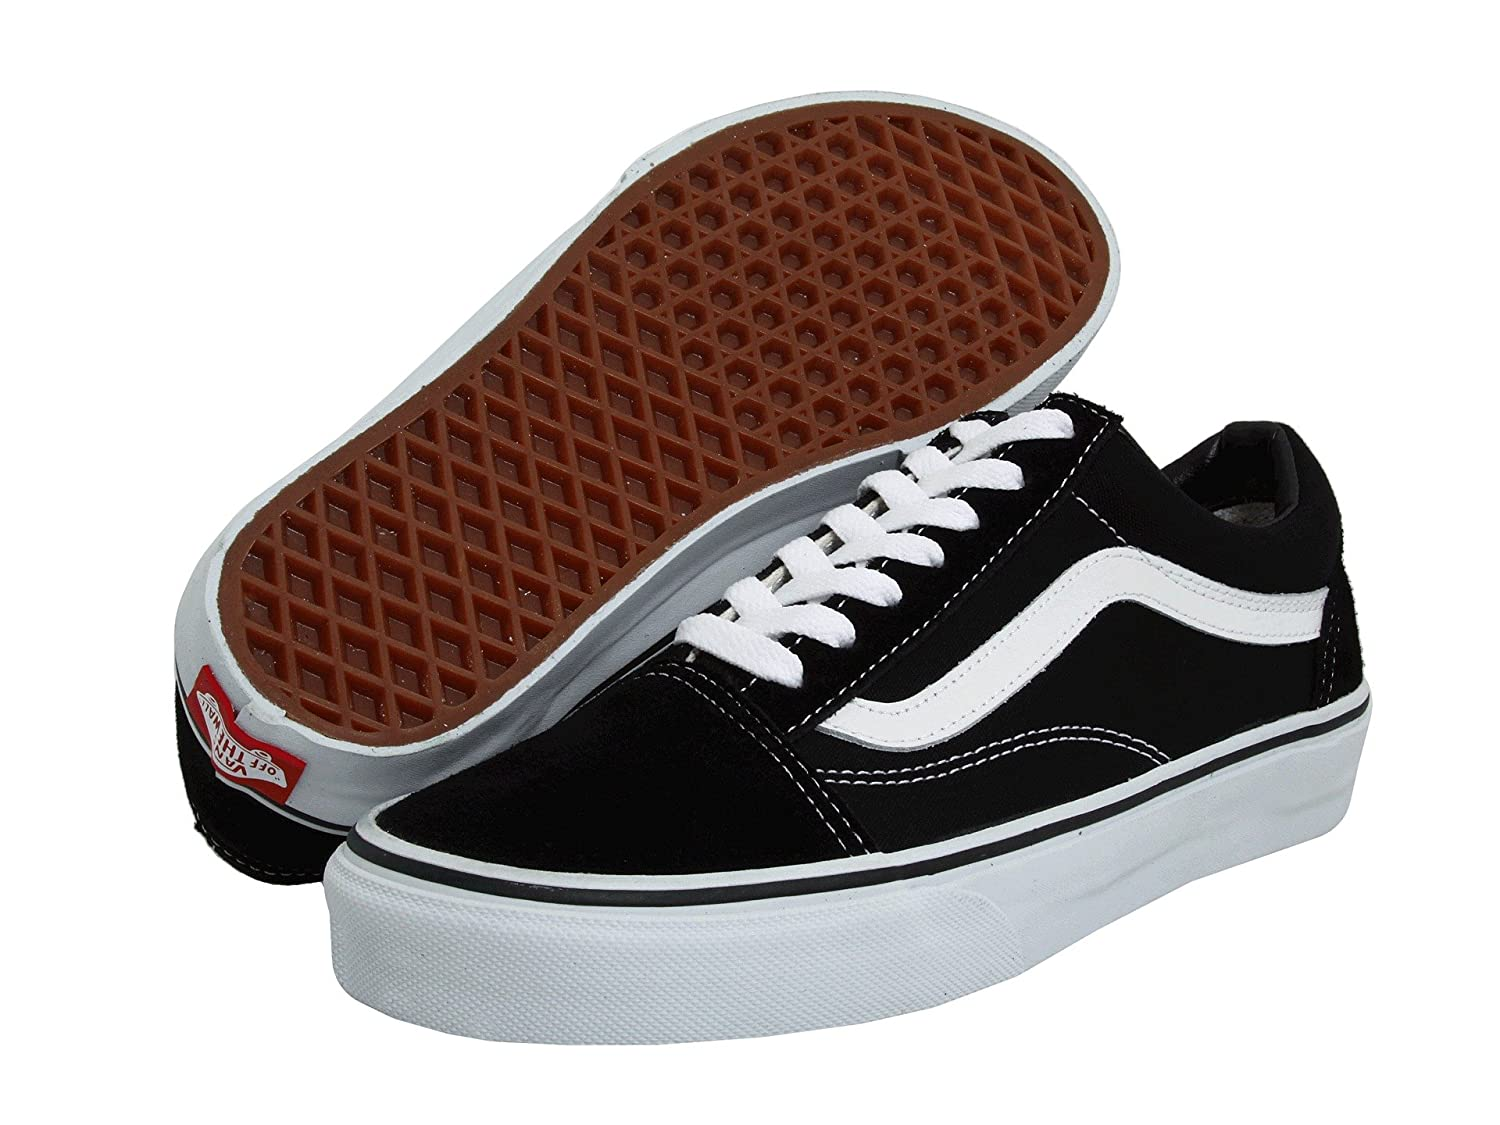 [バンズ] VANS OLD SKOOL B01CRB6PAI 6.5 B(M) US Women / 5 D(M) US Men|Canvas Gum Eclipse Canvas Gum Eclipse 6.5 B(M) US Women / 5 D(M) US Men